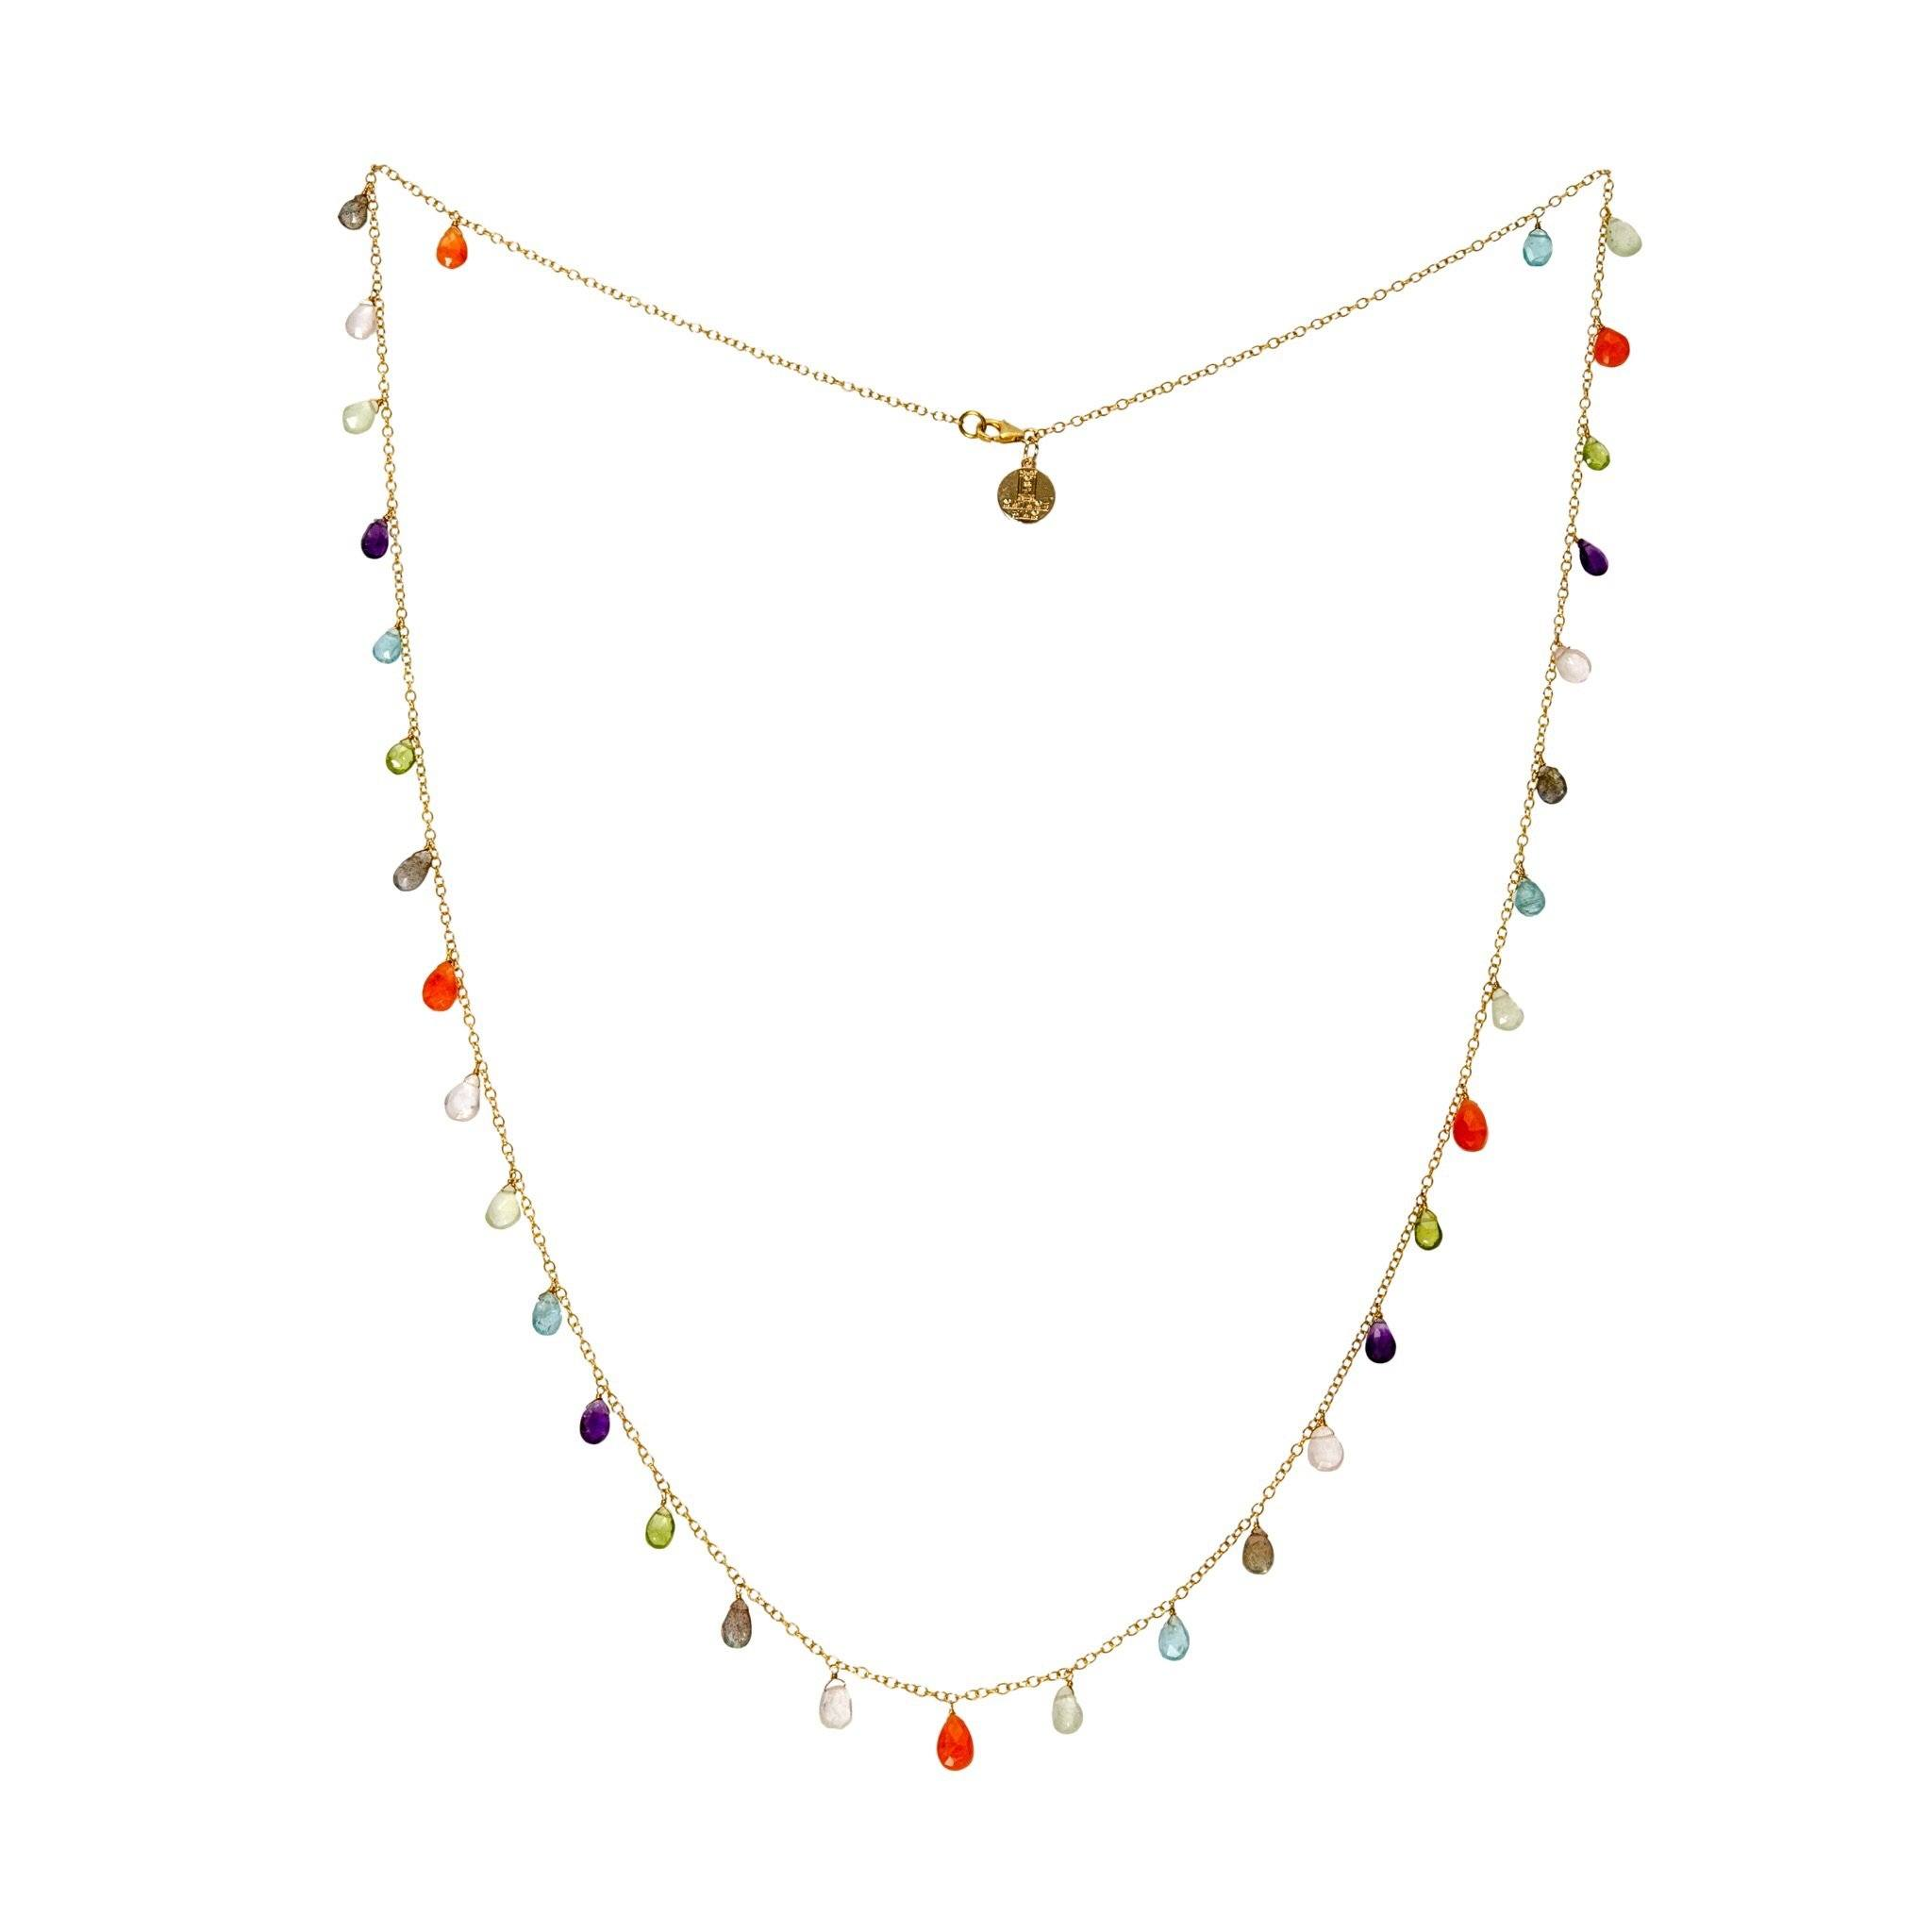 Nahm semi precious multicolor necklace